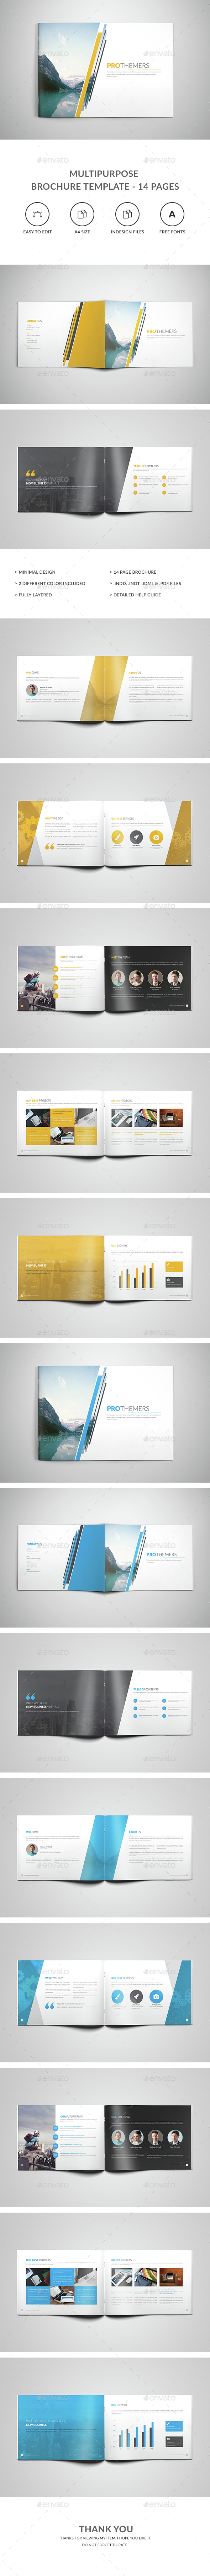 Multipurpose Brochure Template – 14 Pages - Corporate Brochures